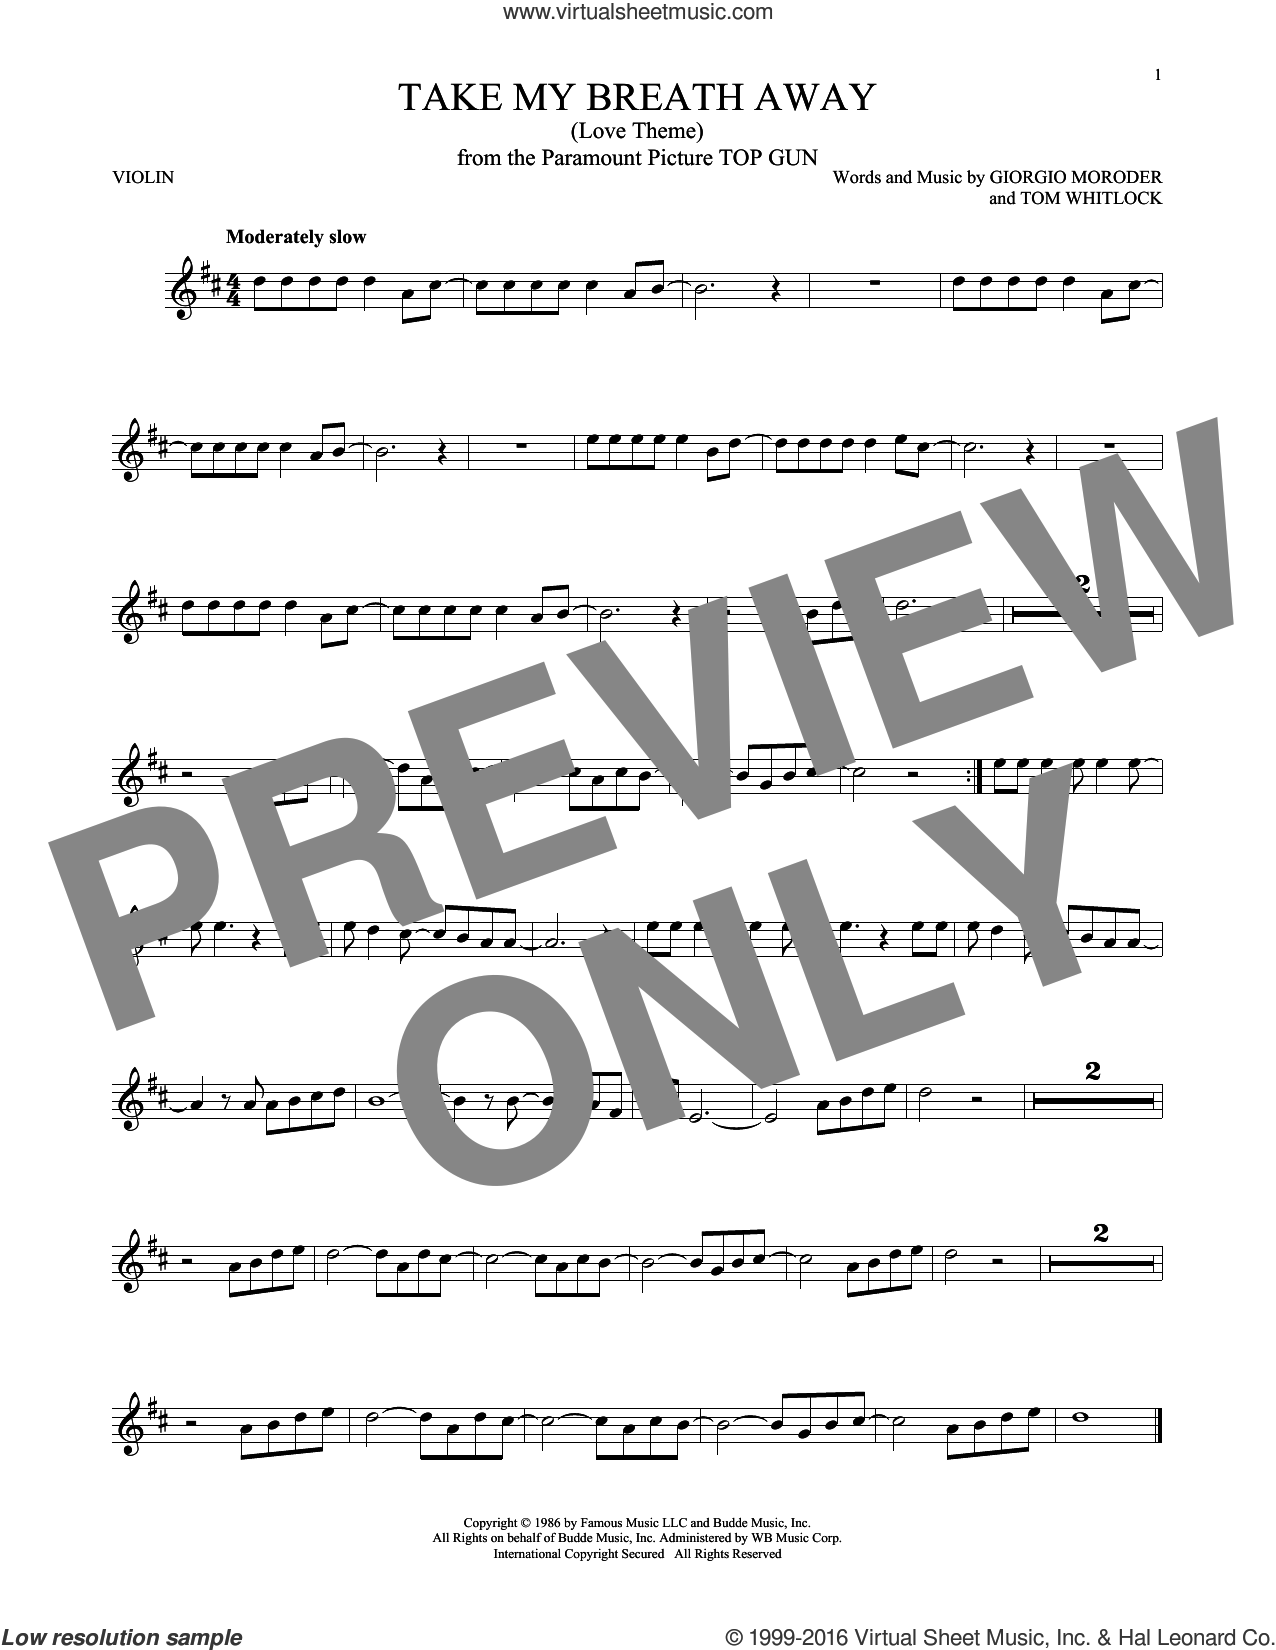 Take My Breath Away (Love Theme) sheet music for violin solo by Giorgio Moroder, Berlin, Jessica Simpson and Tom Whitlock, intermediate. Score Image Preview.